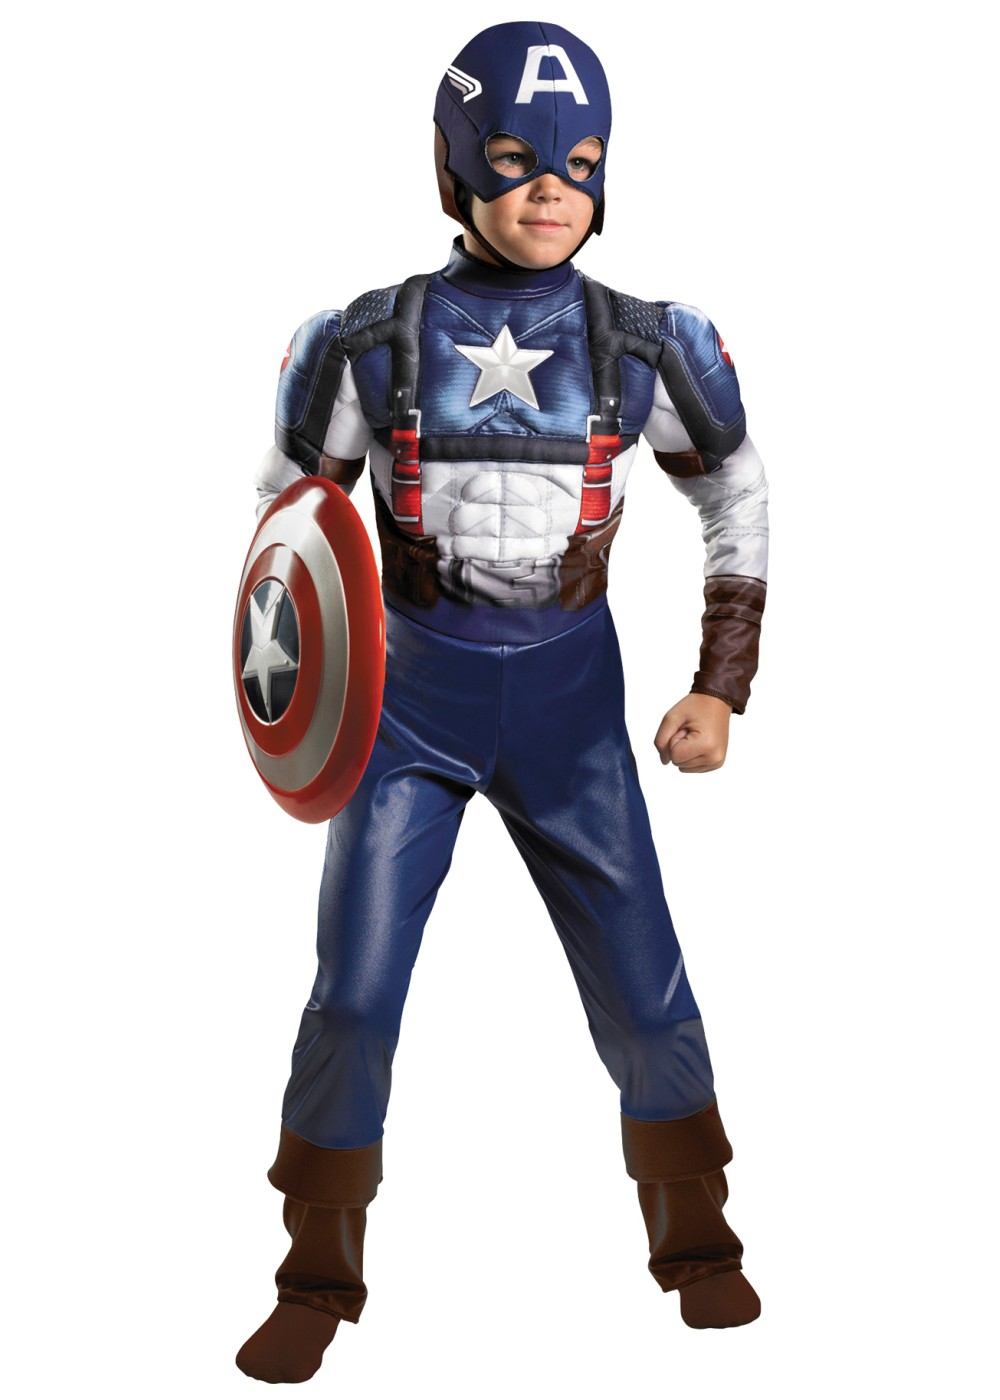 Captain America Avengers Boys Costume Superhero Costumes